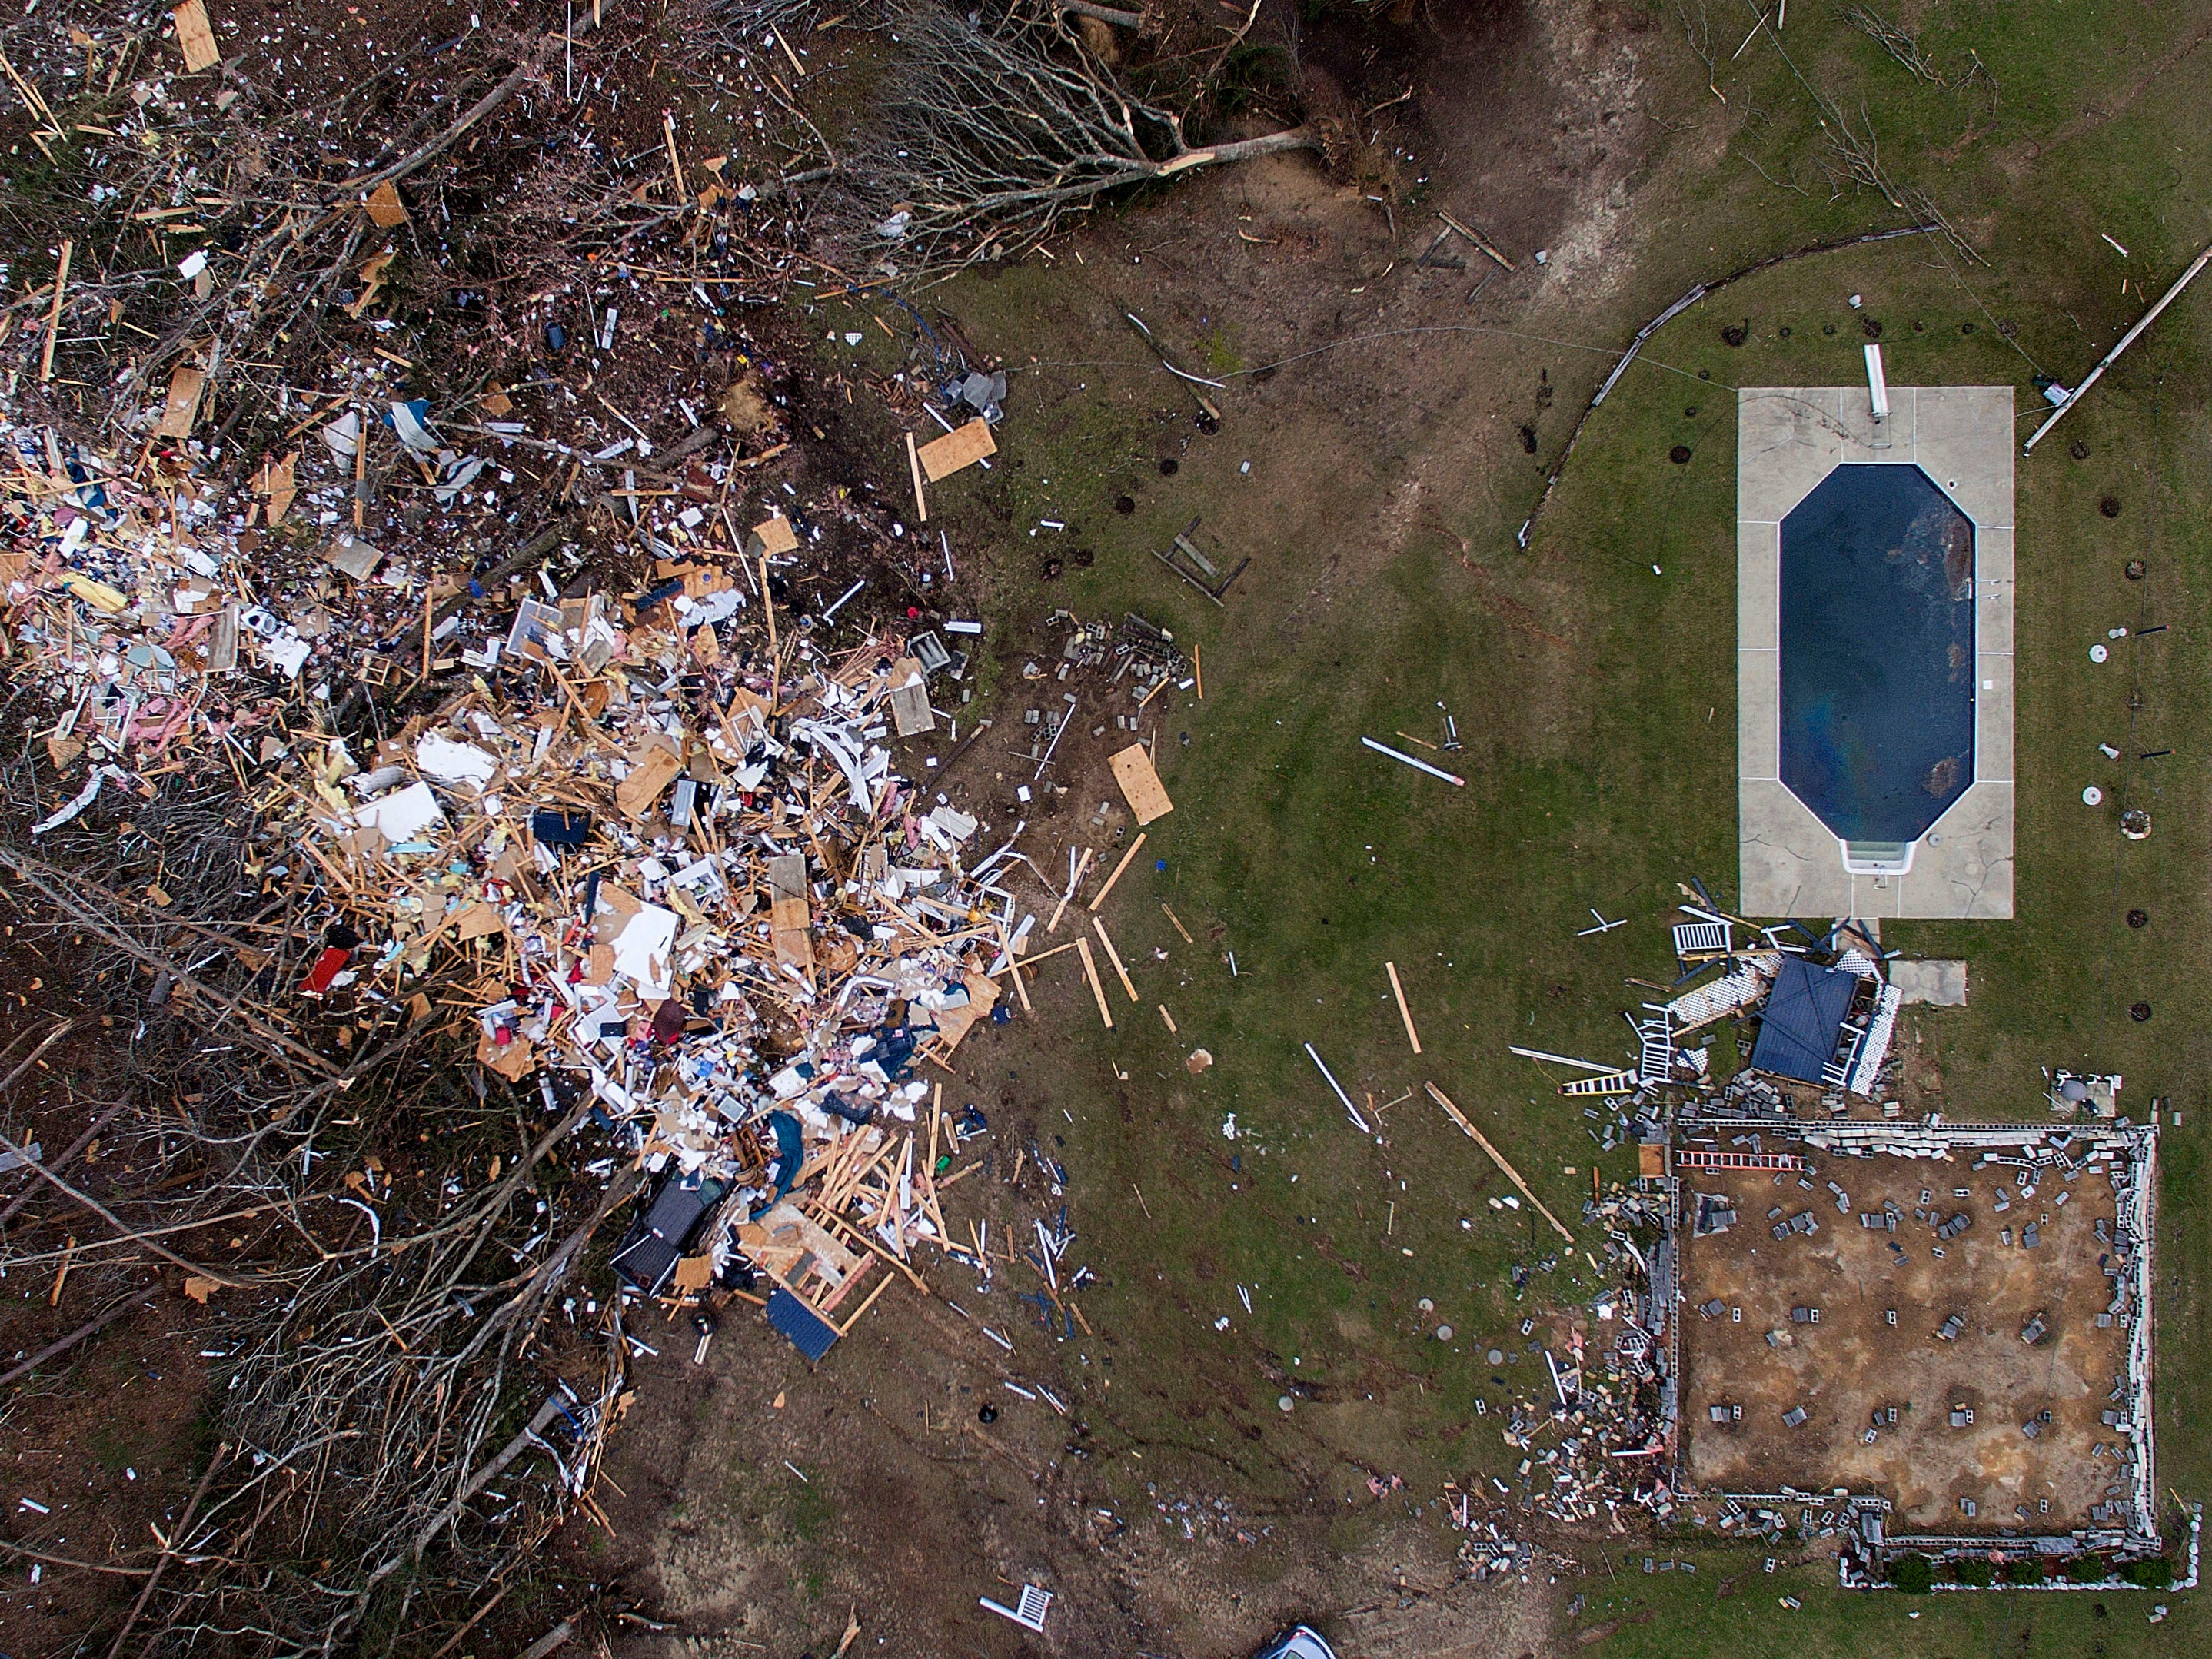 Debris from a home litters a yard the day after a tornado blew it off its foundation in Beauregard, Ala., Monday, March 4, 2019.